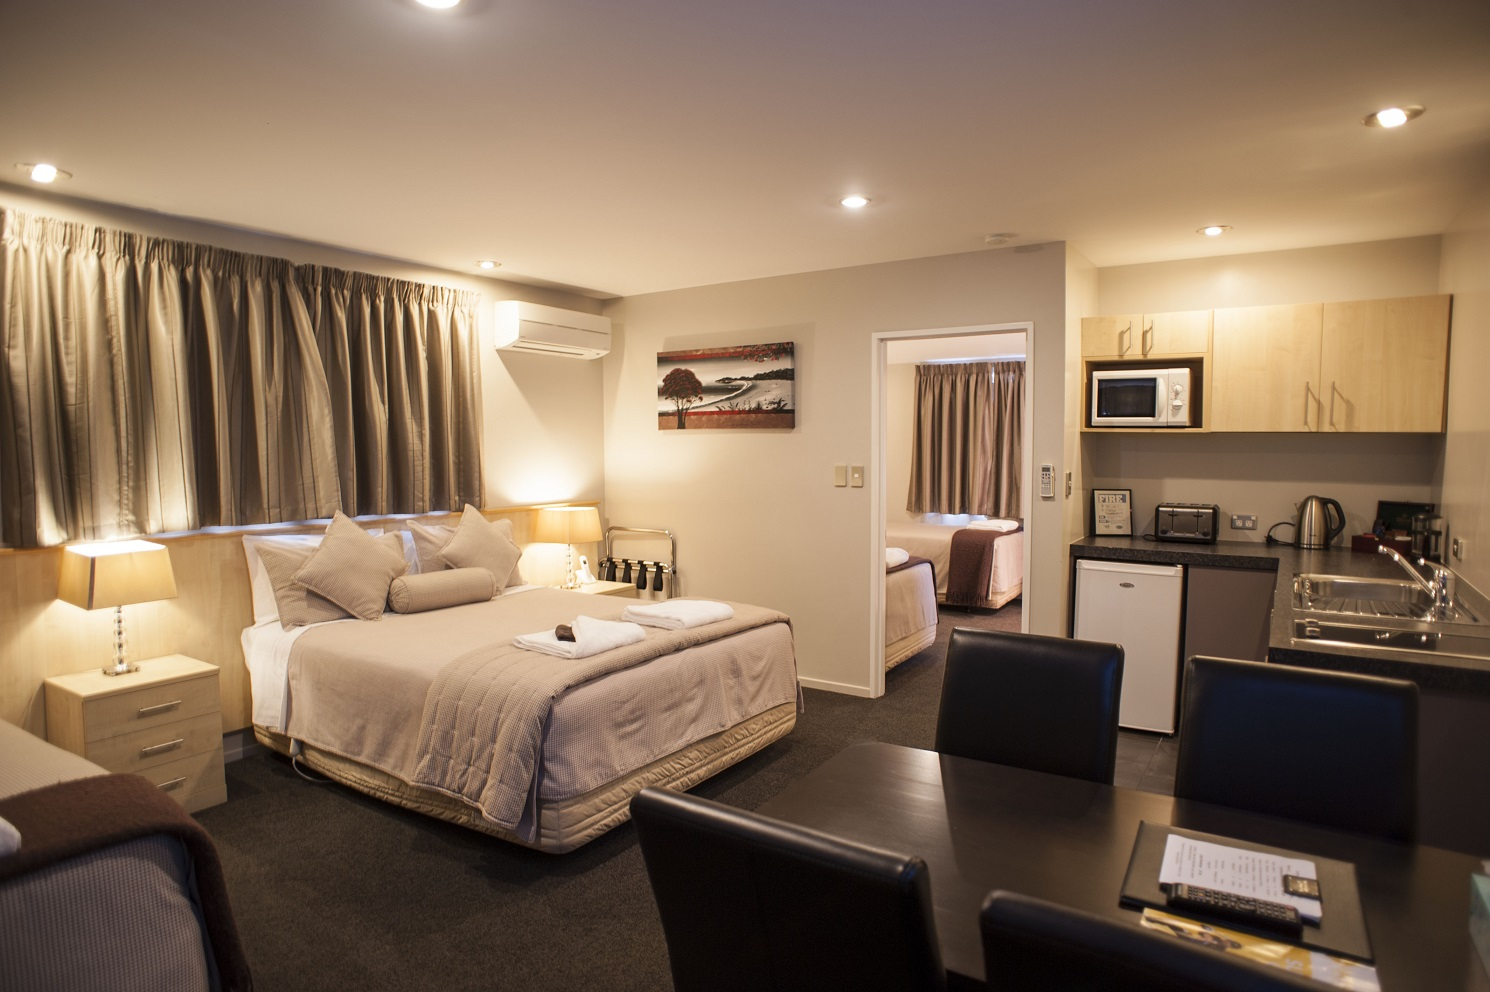 Christchurch luxury apartment qualmark 5 star 1 bedroom for Apartment one bedroom design